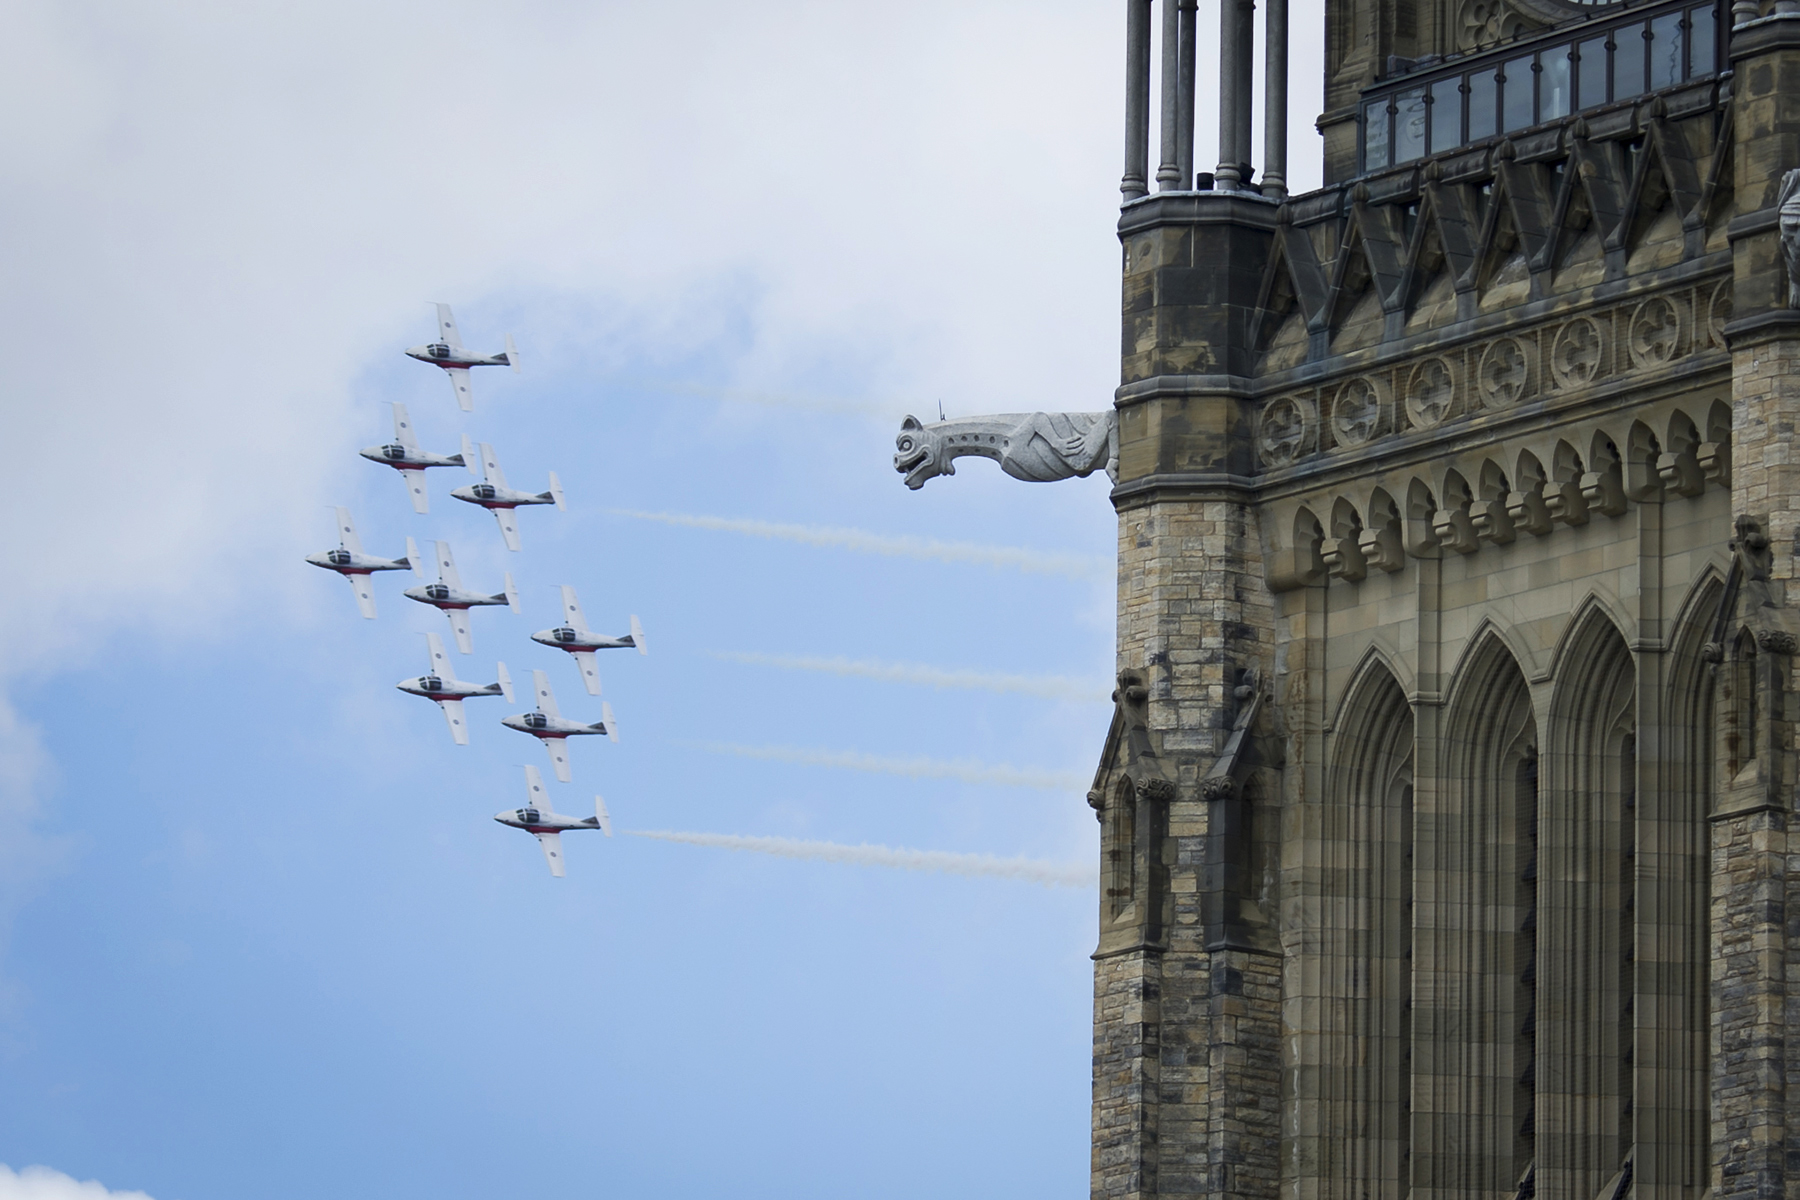 A Wedge formation of RCAF Snowbirds, a demonstration team of CT-114 Tutor aircraft, flies past the Peace Tower on Parliament Hill in Ottawa, Ontario, on July 2, 2017, in celebration of the 150th anniversary of Canada's confederation. PHOTO: Corporal Michael J. MacIsaac, SU12-2017-0794-243